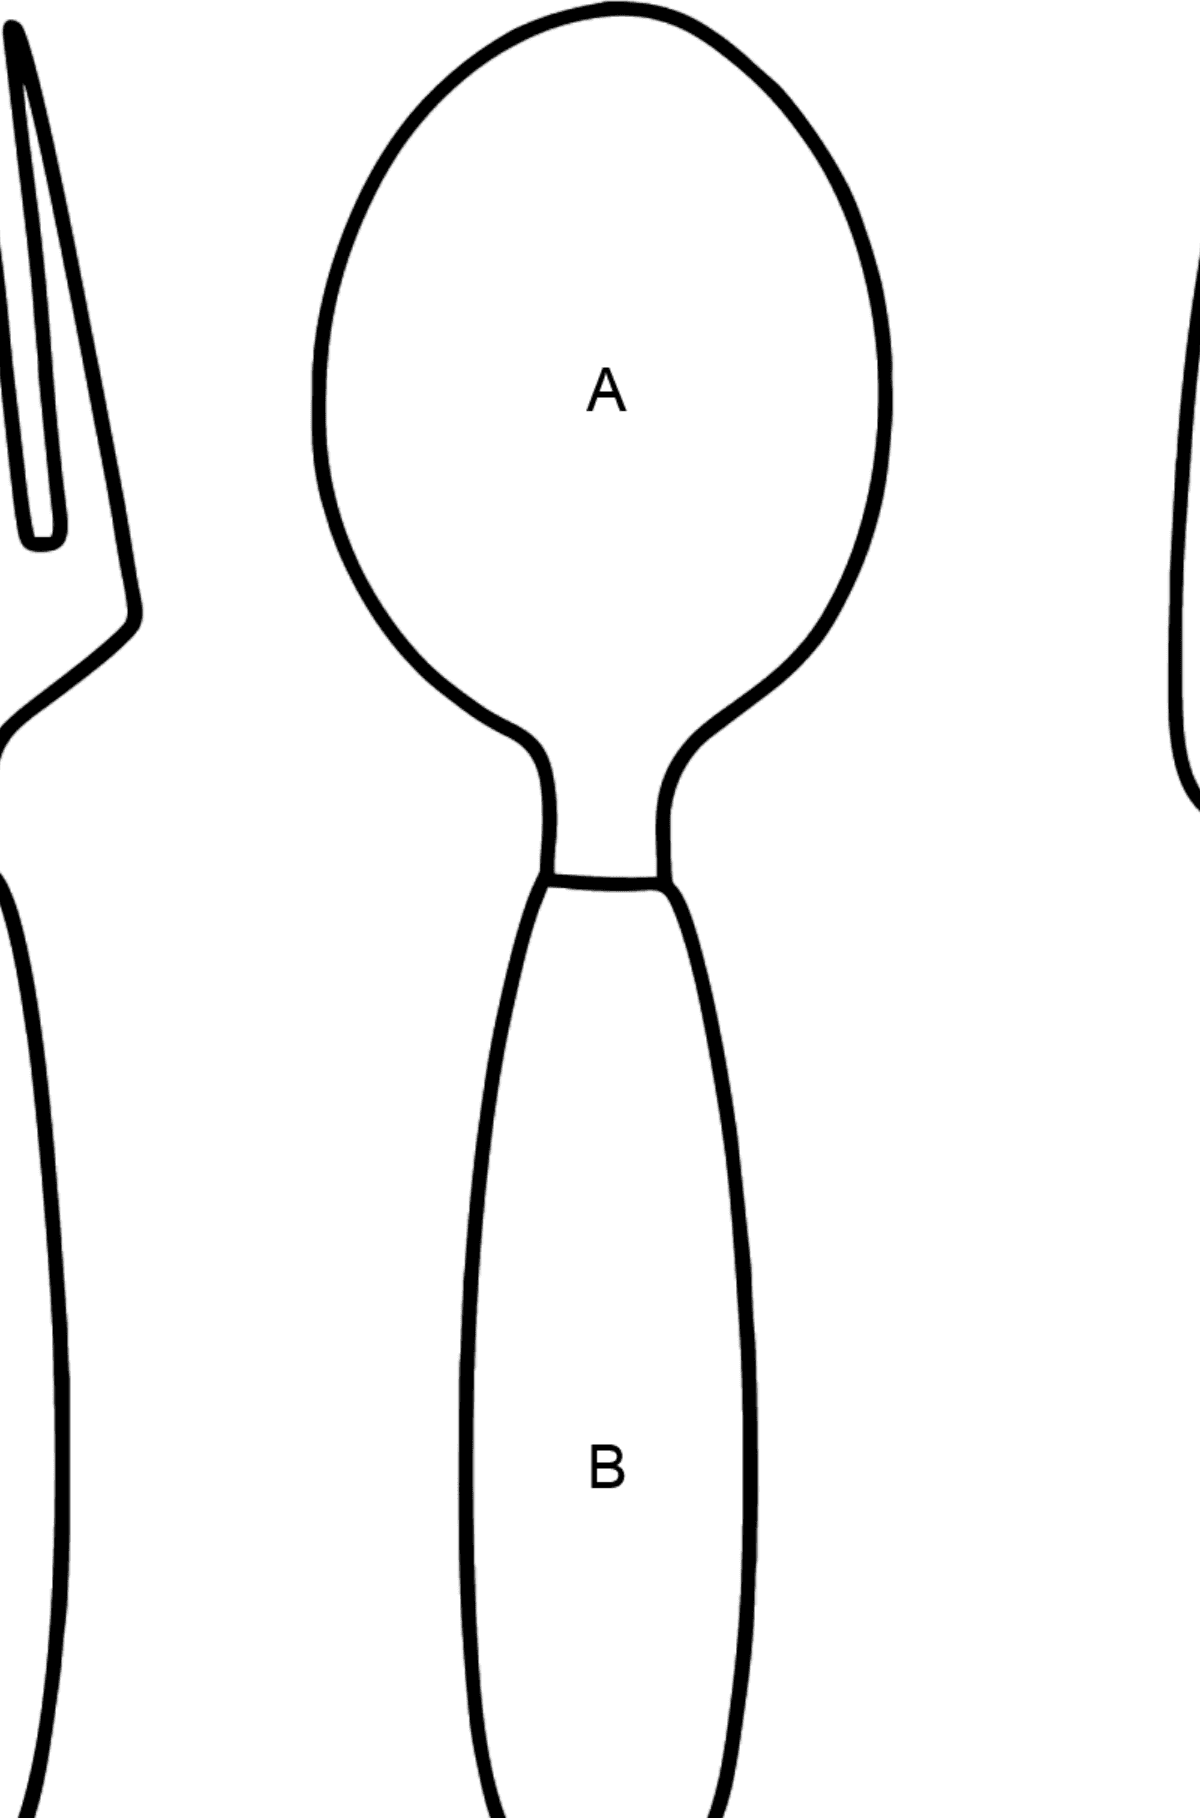 Cutlery coloring page - Coloring by Letters for Kids